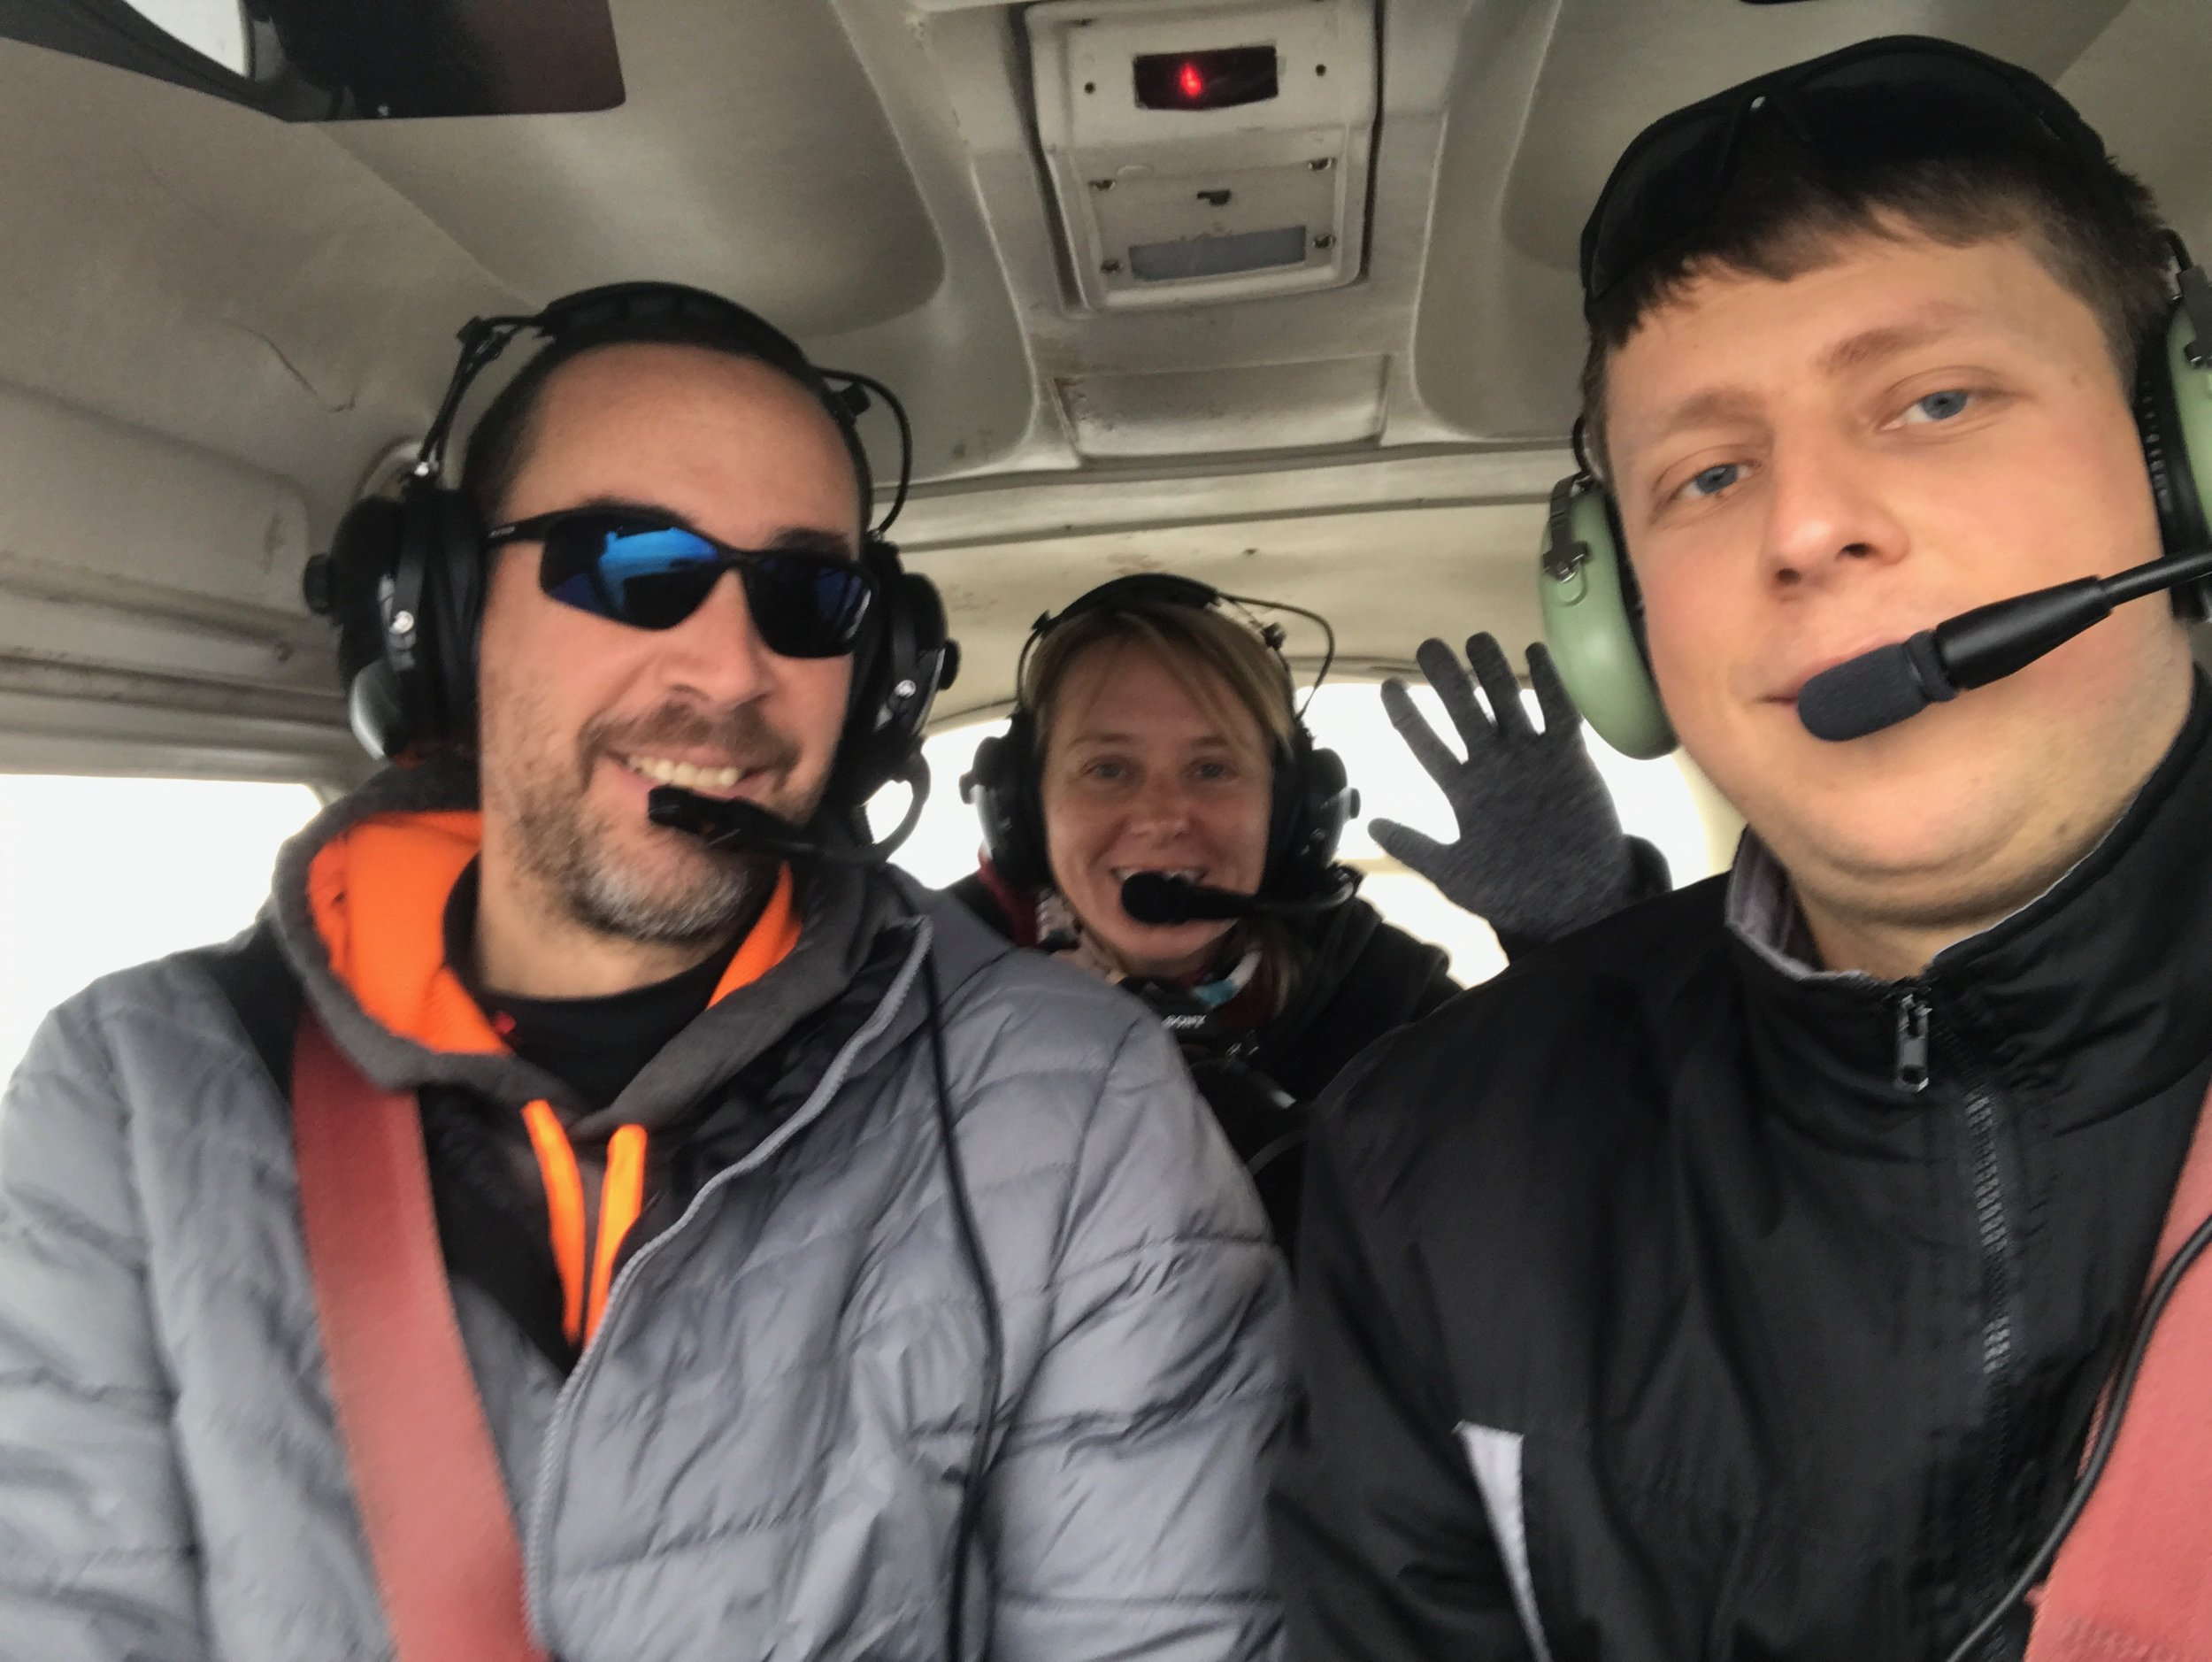 Thanks for the flight, the photo, and the really fun day, Alex!